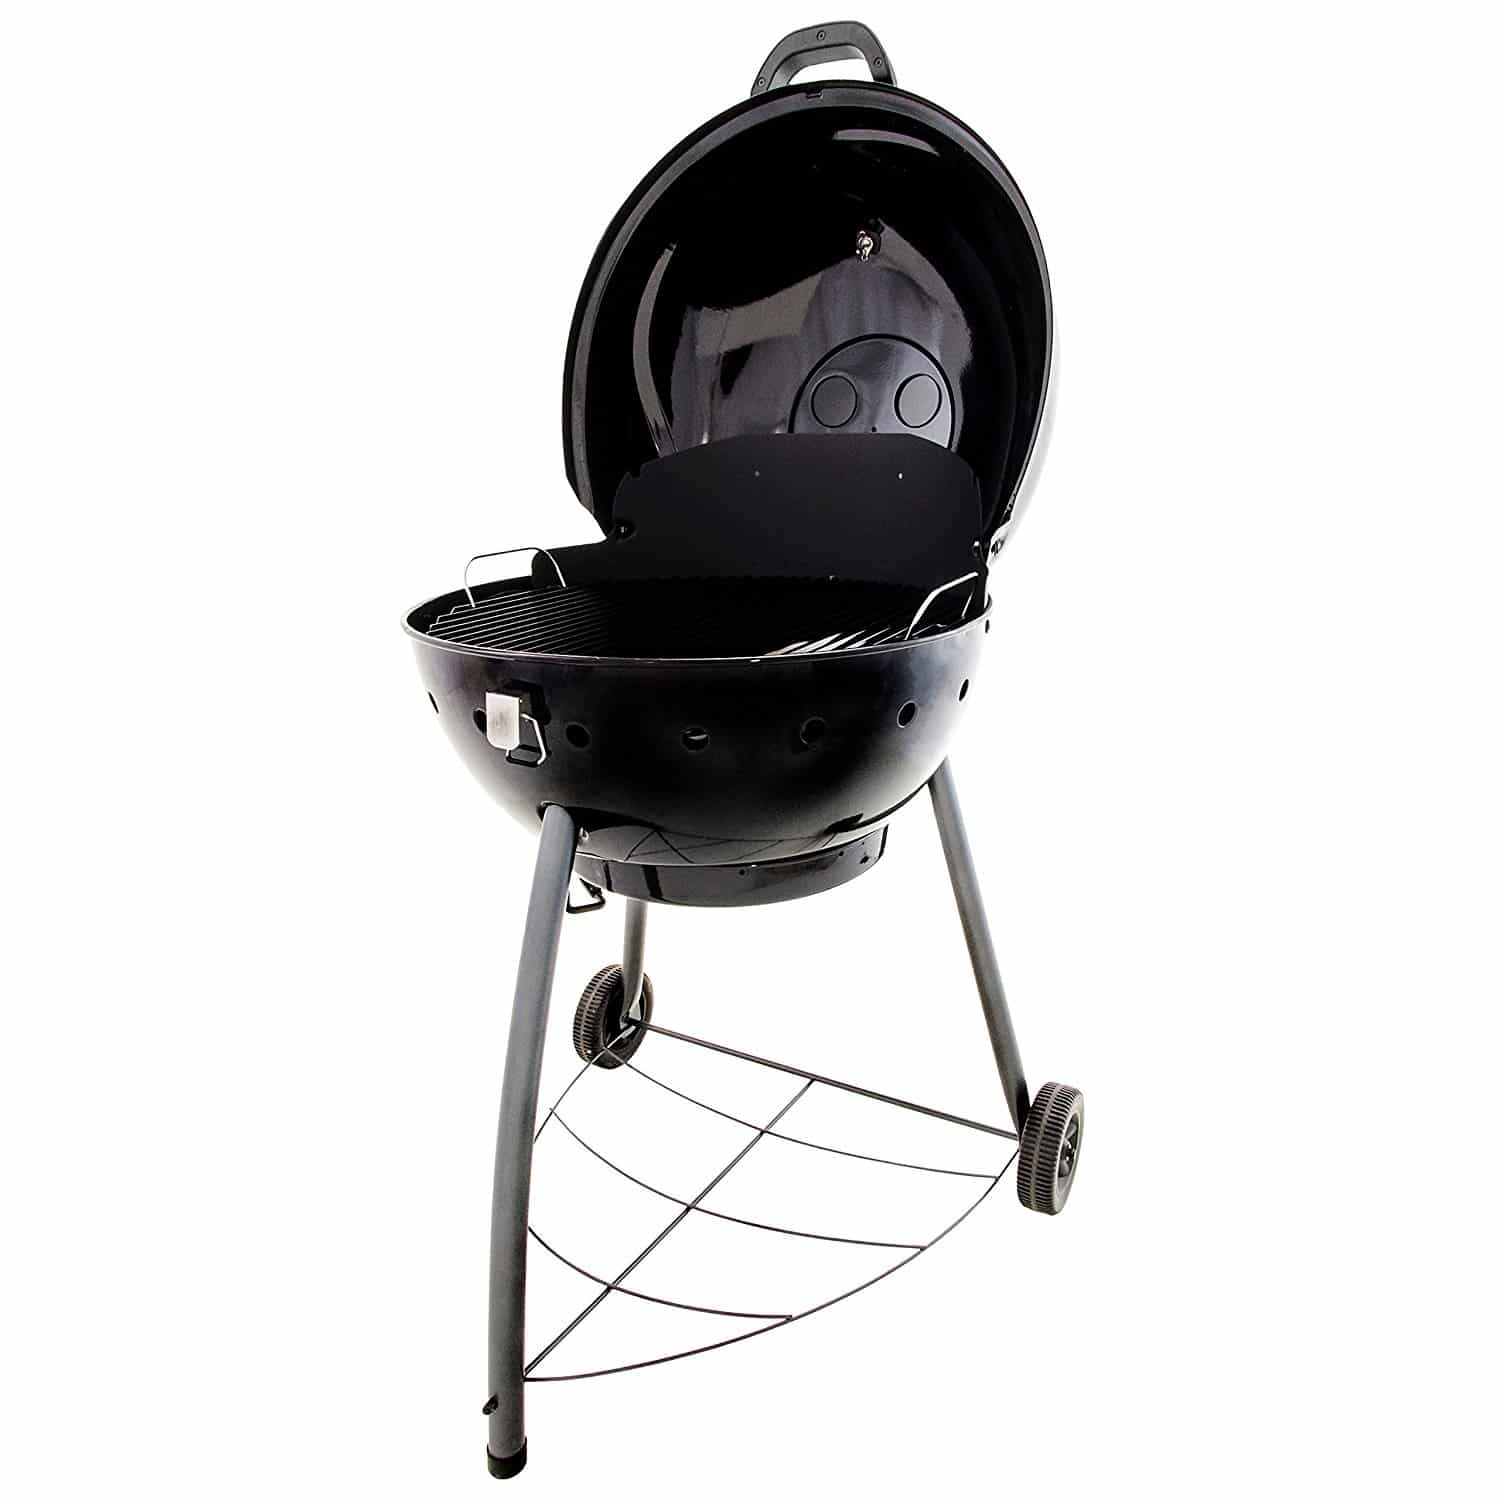 Best Charcoal Grill For 2017, Best Infrared Charcoal Grill